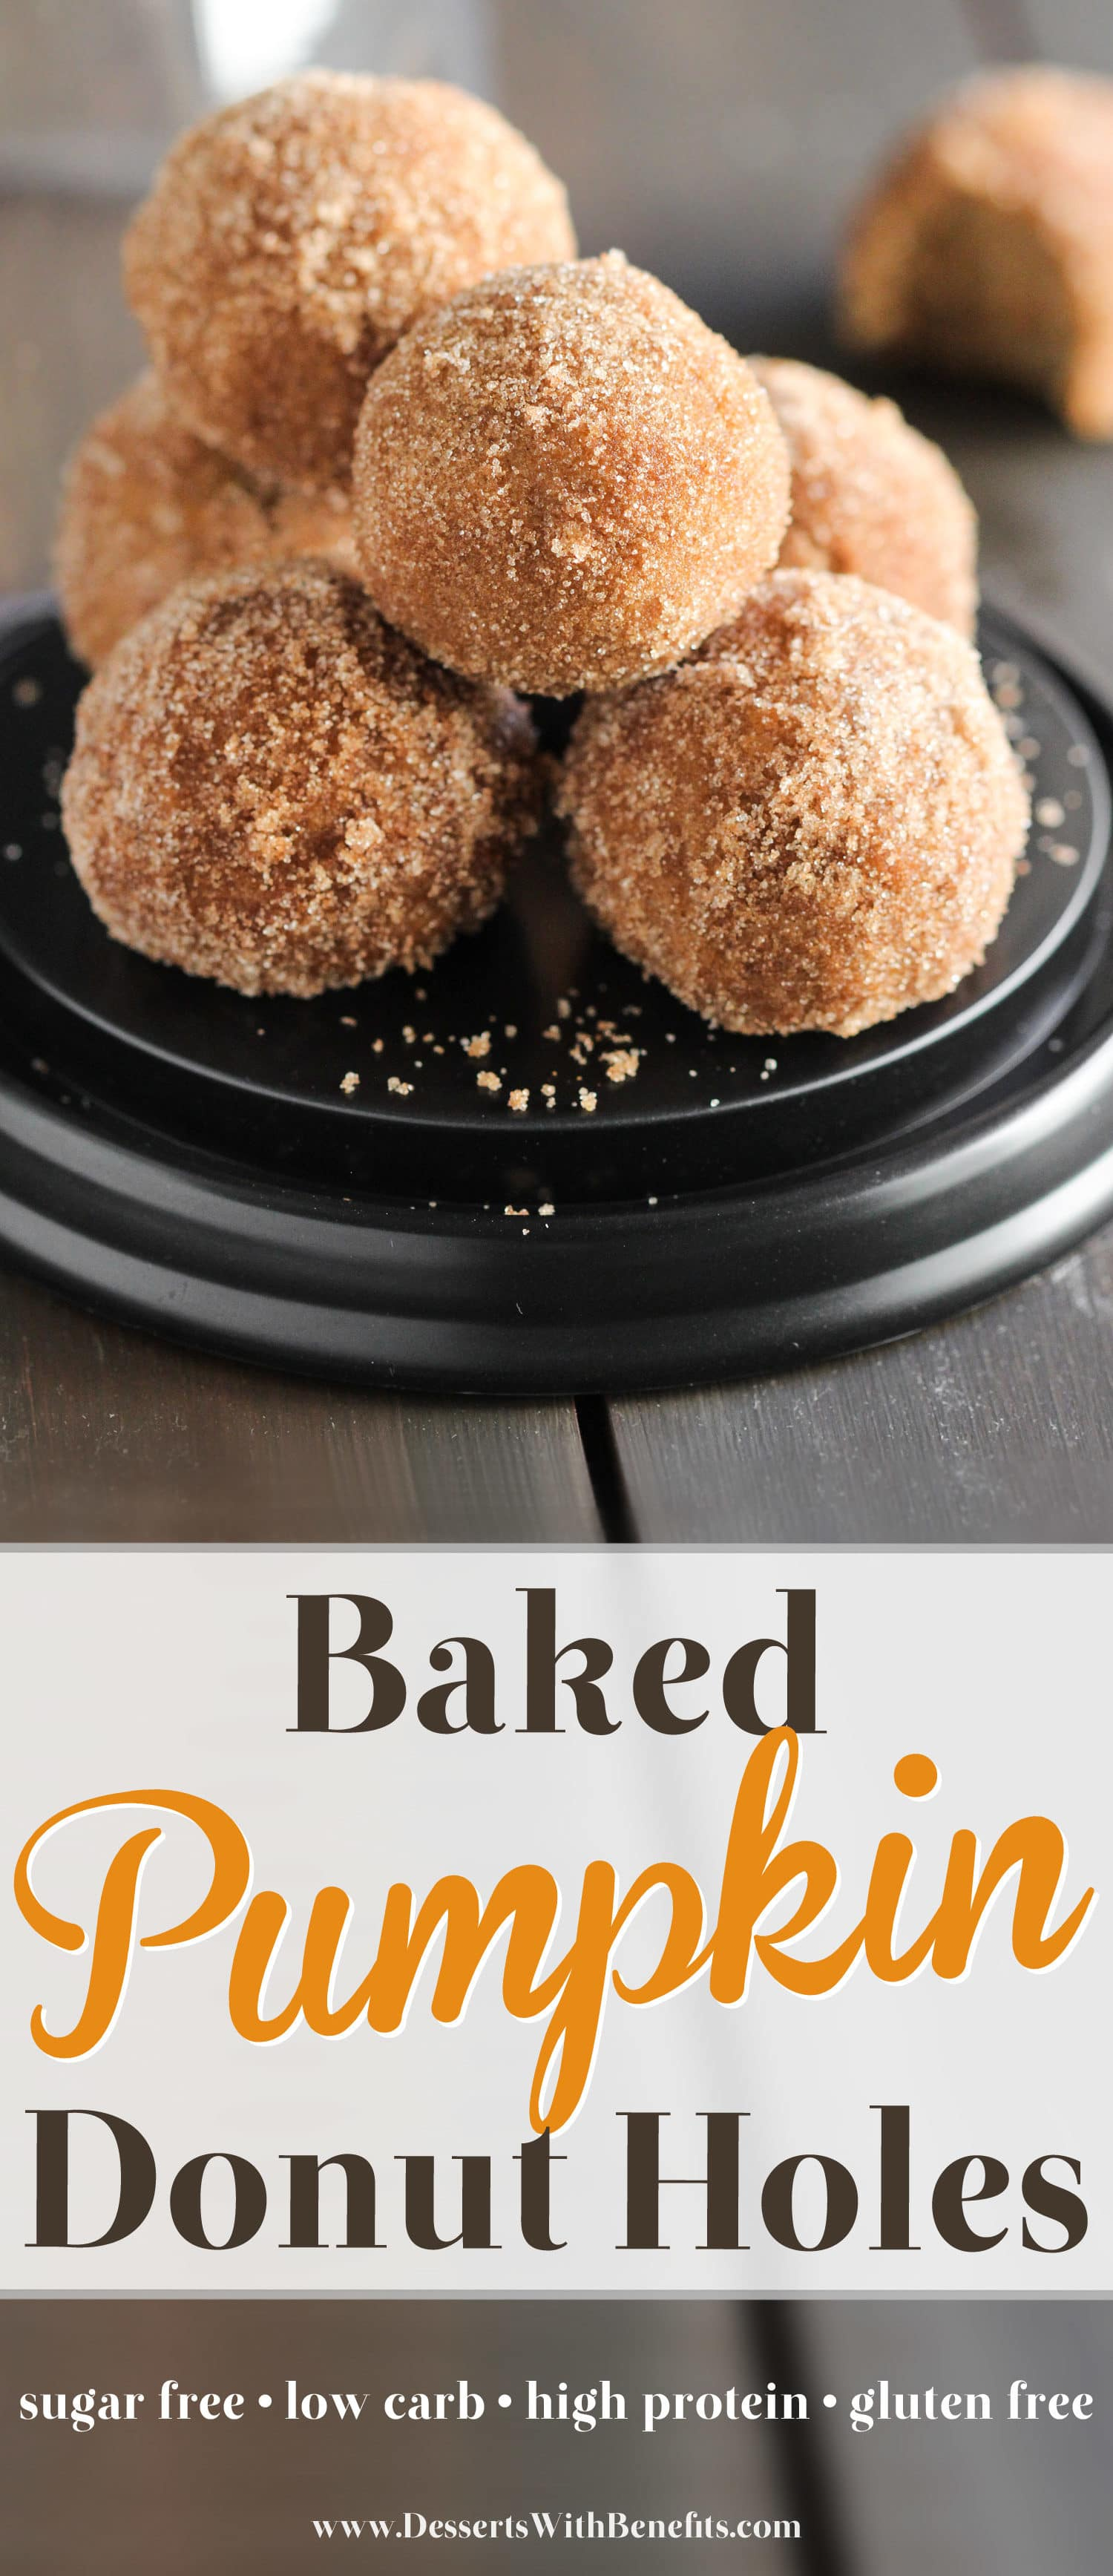 Healthy Baked Pumpkin Donut Holes! You'll have a hard time controlling yourself around these. They're fluffy, sweet, and spiced with cinnamon, ginger, nutmeg, and cloves. Light, filling, and satisfying. You'd never know these are sugar free, low carb, high protein, gluten free, and dairy free too! Healthy Dessert Recipes at Desserts With Benefits (www.DessertsWithBenefits.com)